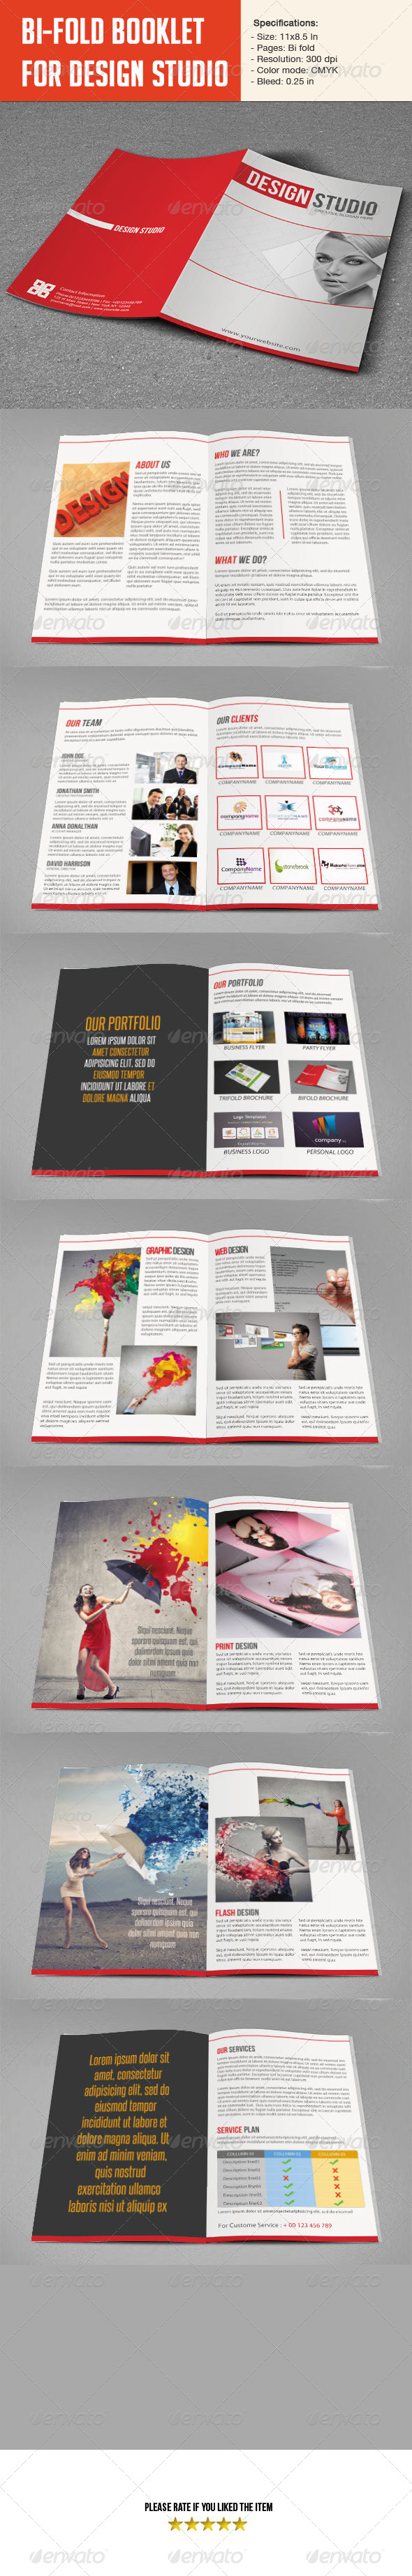 design studio brochure - bifold brochure for design studio by smmr graphicriver